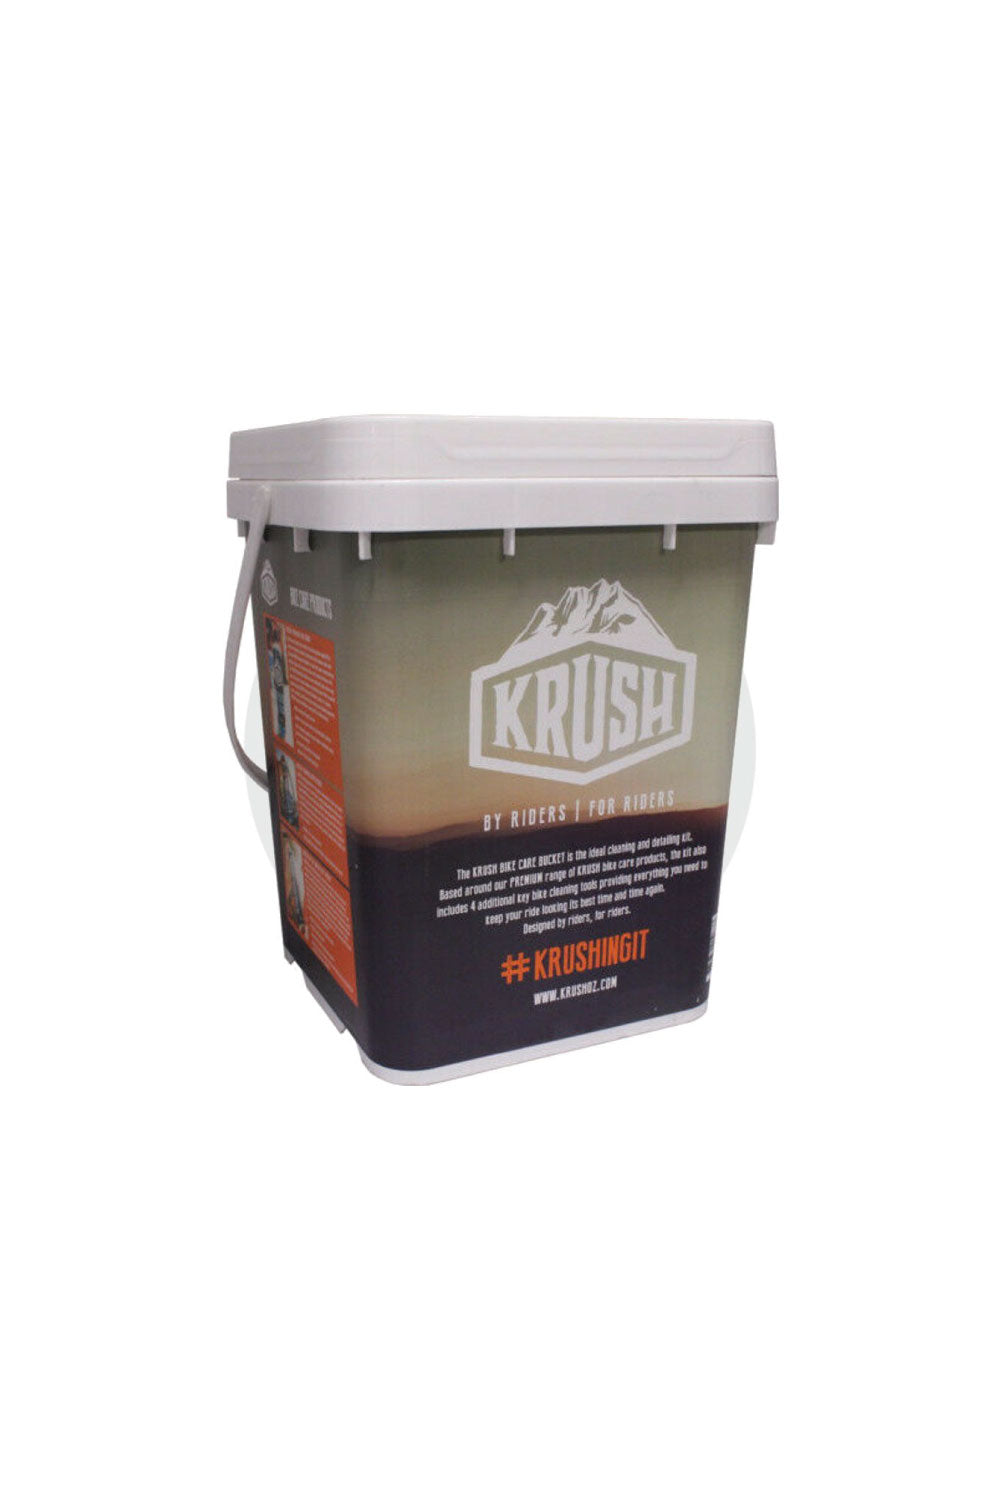 Krush Pro Bike Care Detailing Mountain Bike Bucket